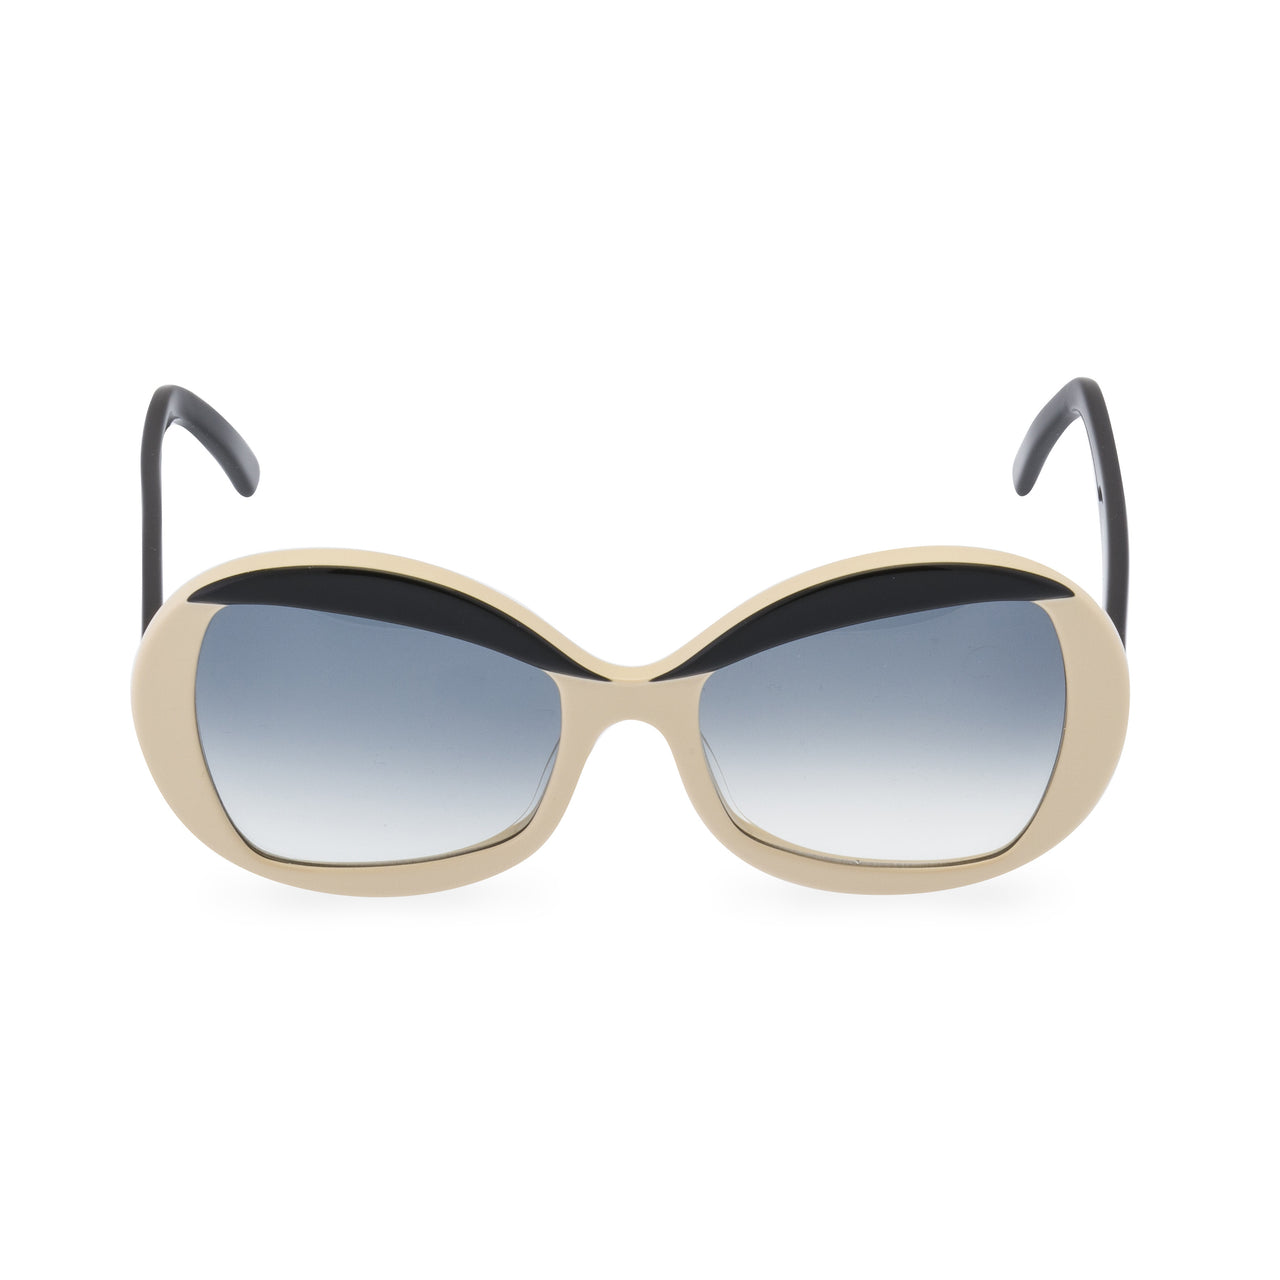 Francois - Sunglasses Taupe / Black